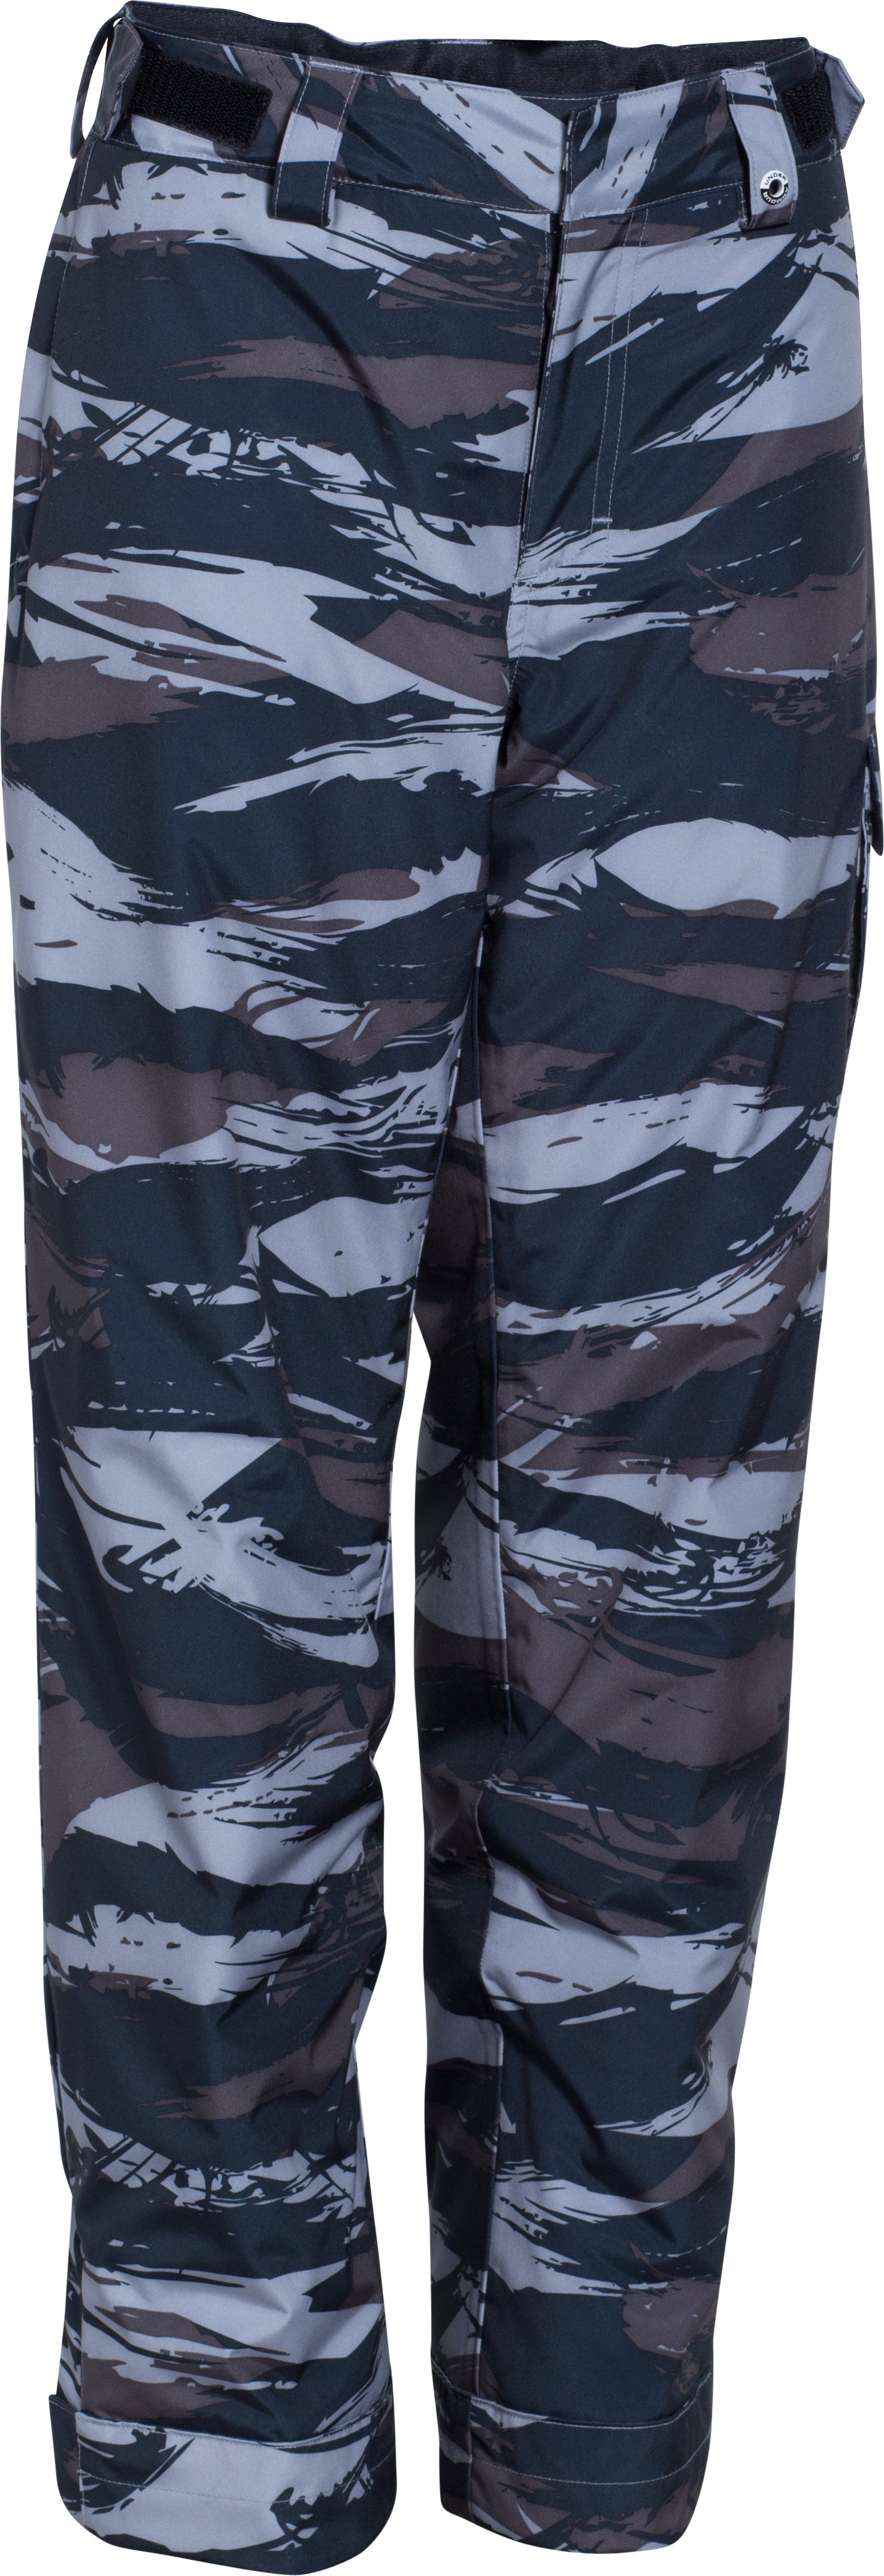 Boys' ColdGear® Infrared Hacker Pants, Steel, zoomed image